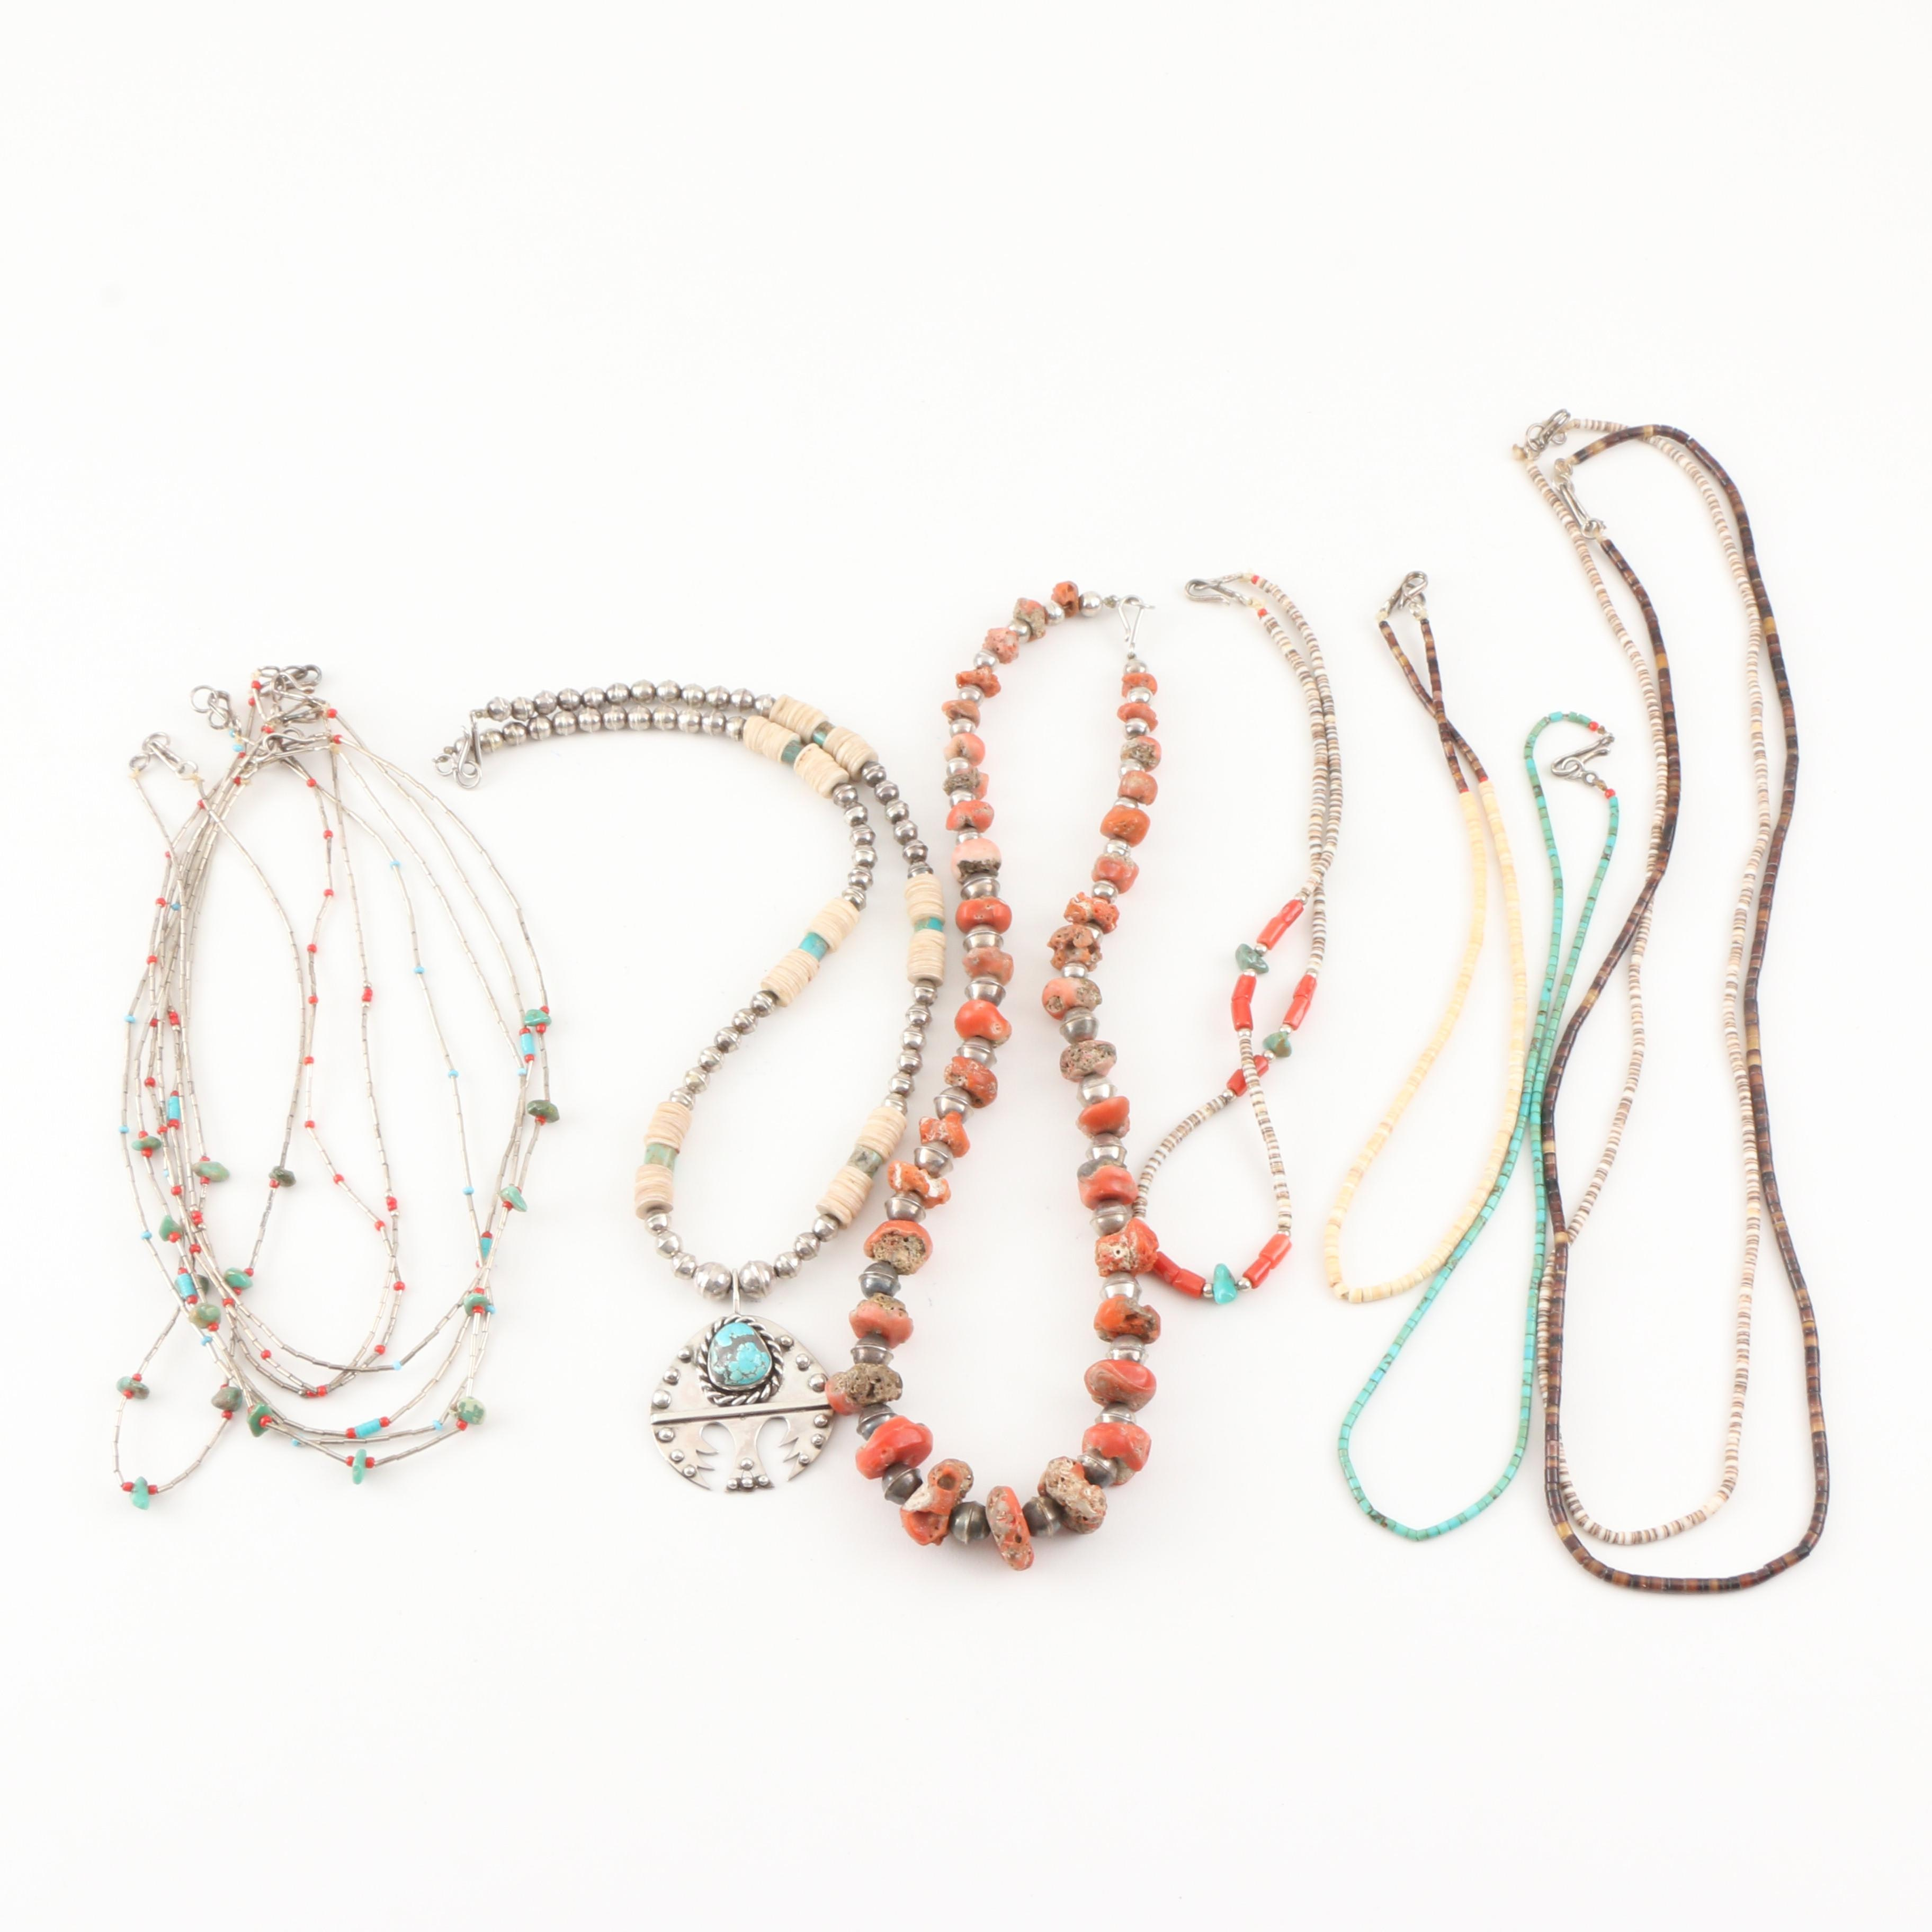 Assortment of Beaded Sterling Silver Necklaces Including Accents